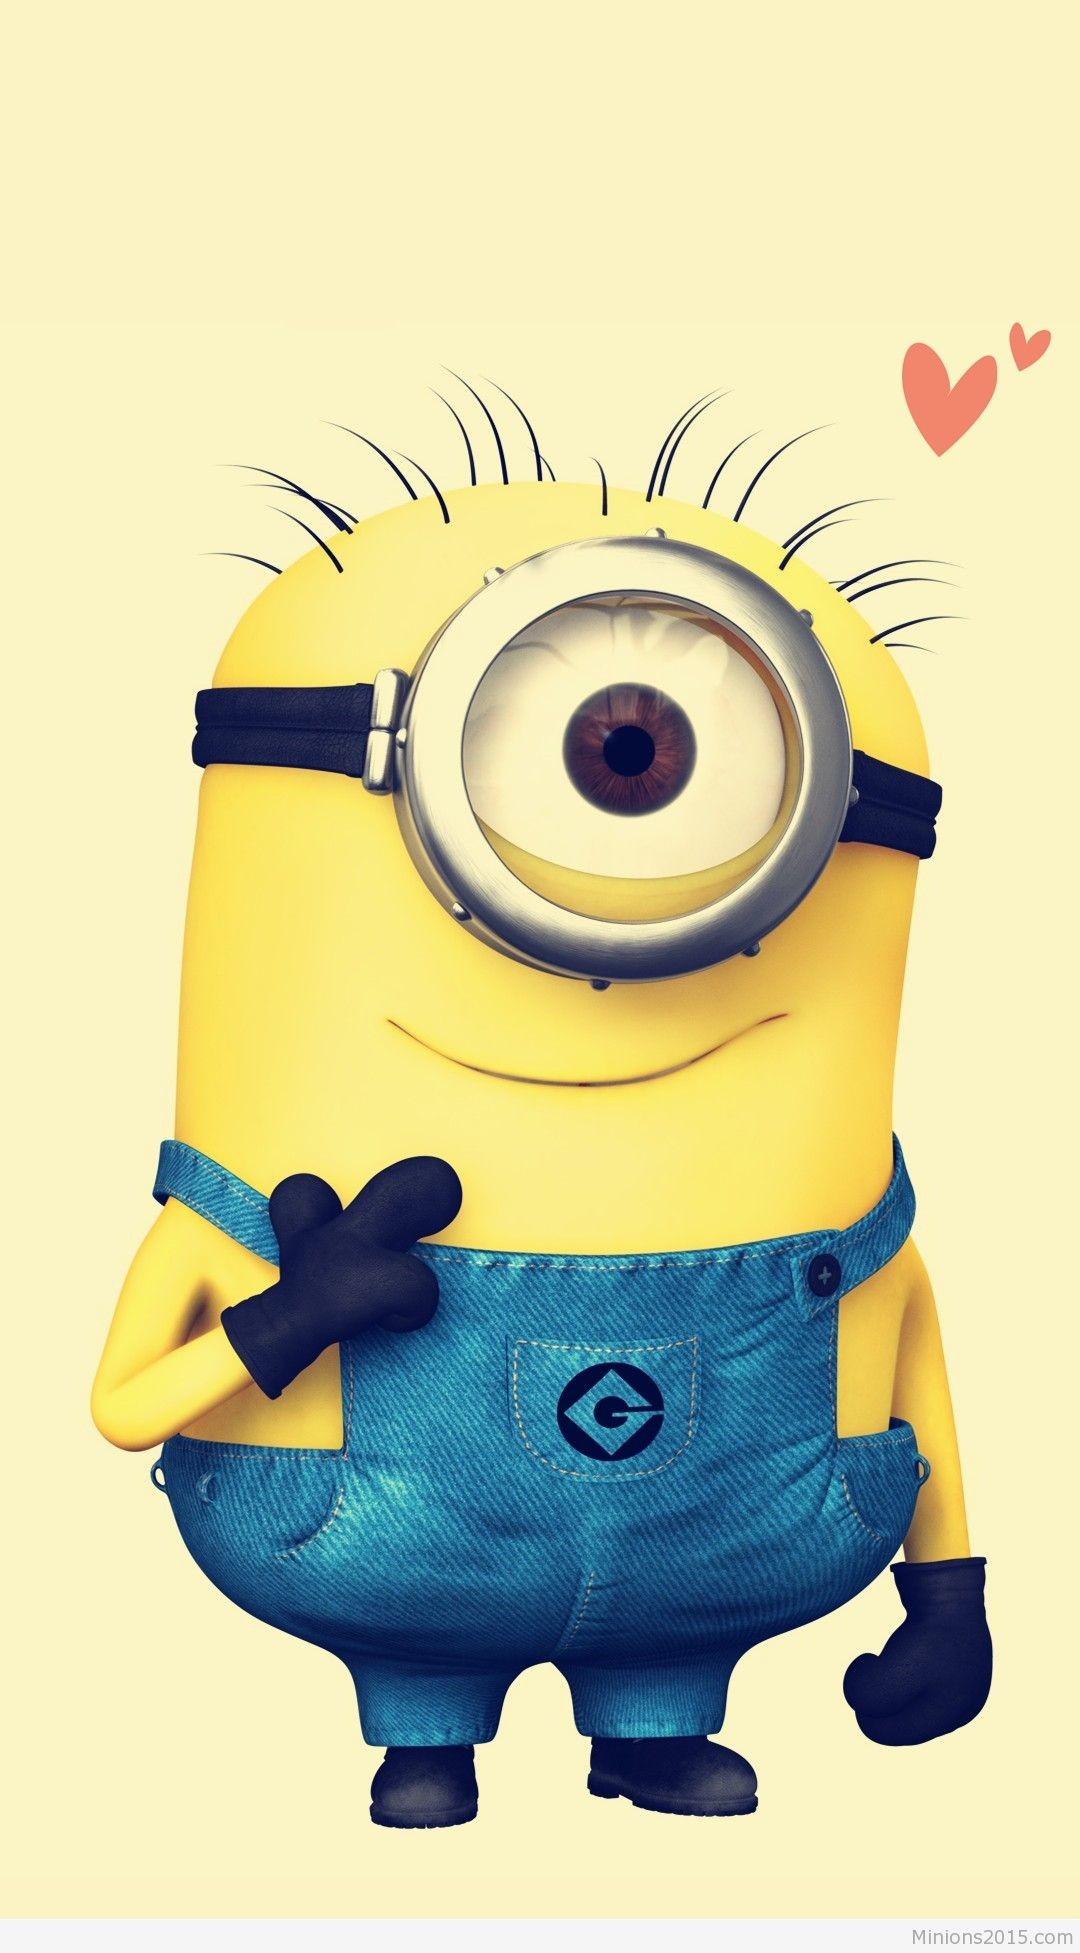 1080x1953 2014 halloween despicable me minion apple iphone 6 plus wallpaper hd-f46196